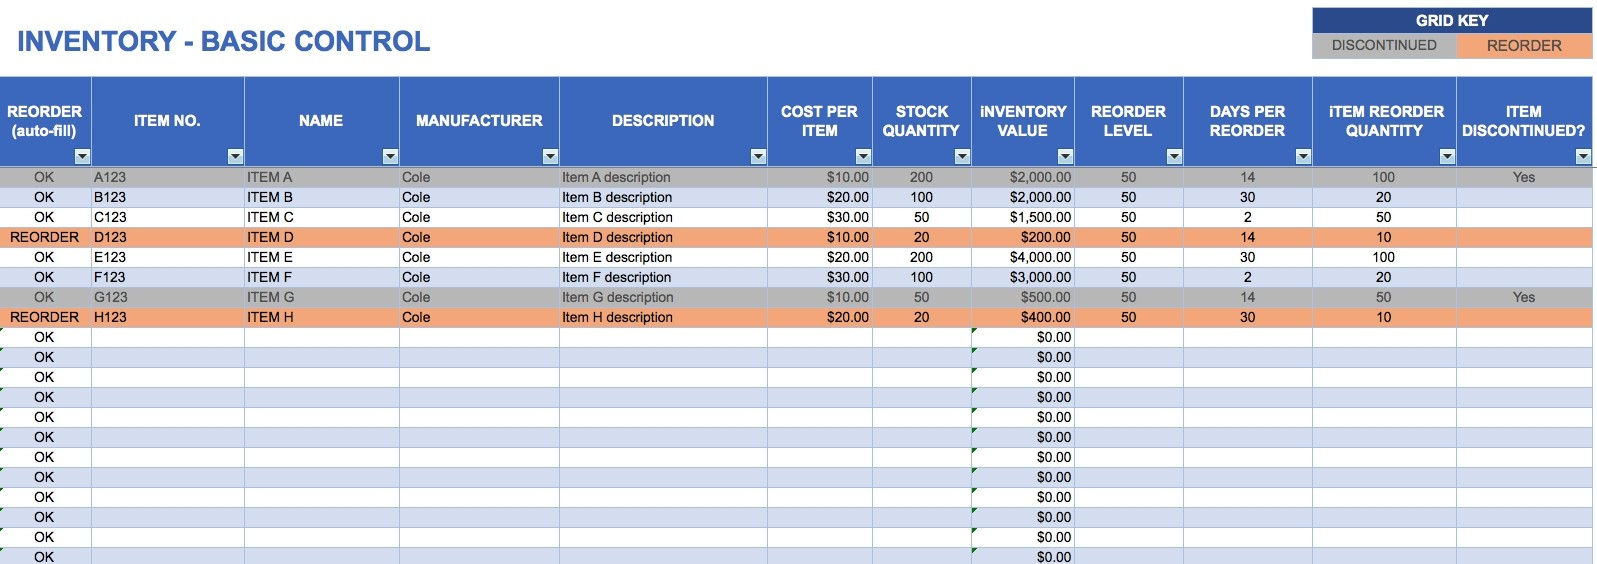 Excel Inventory Tracking Spreadsheet Template Inspirational Free To Free Inventory Tracking Spreadsheet Template